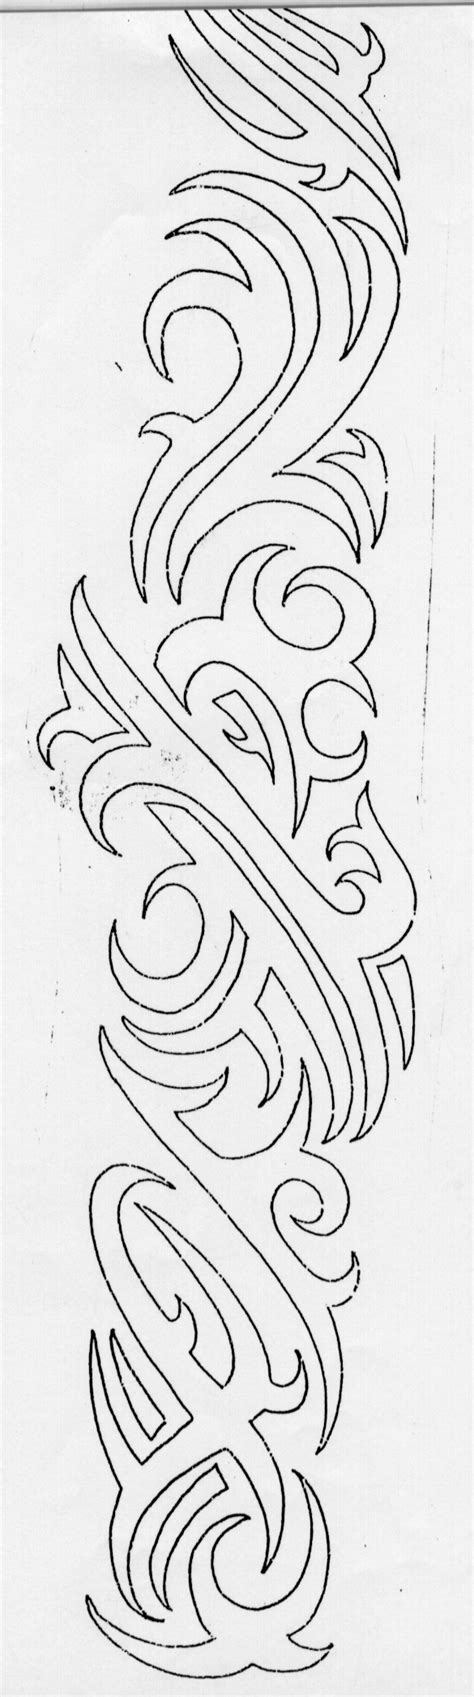 tattoo outline printer arm band tattoos 96arm17 jpg follow link to print full